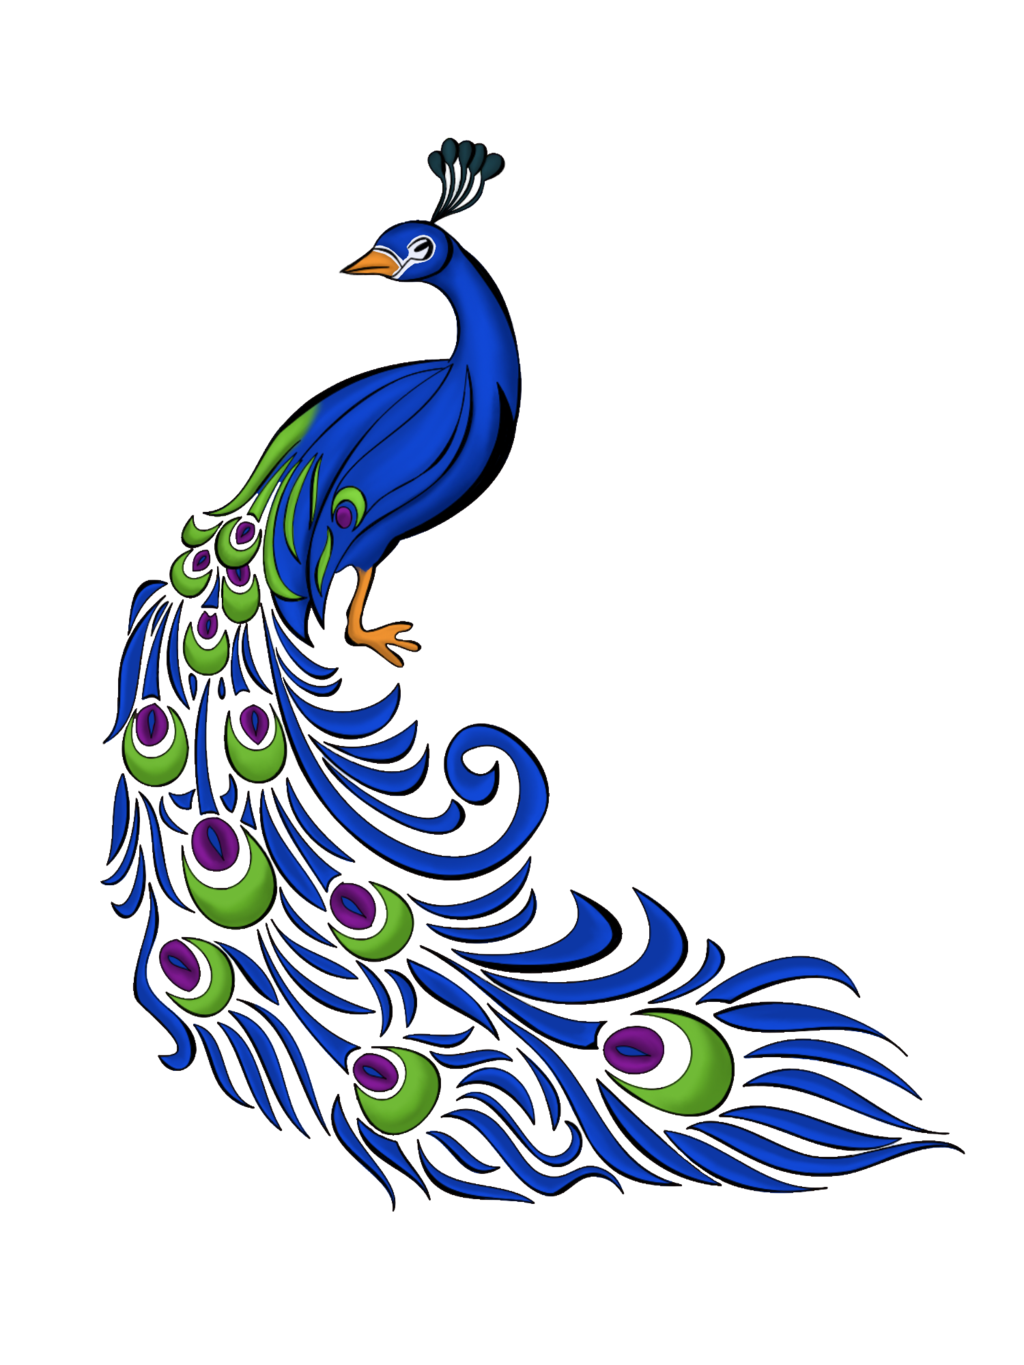 Social drawing colourful. Free peacock feather vector